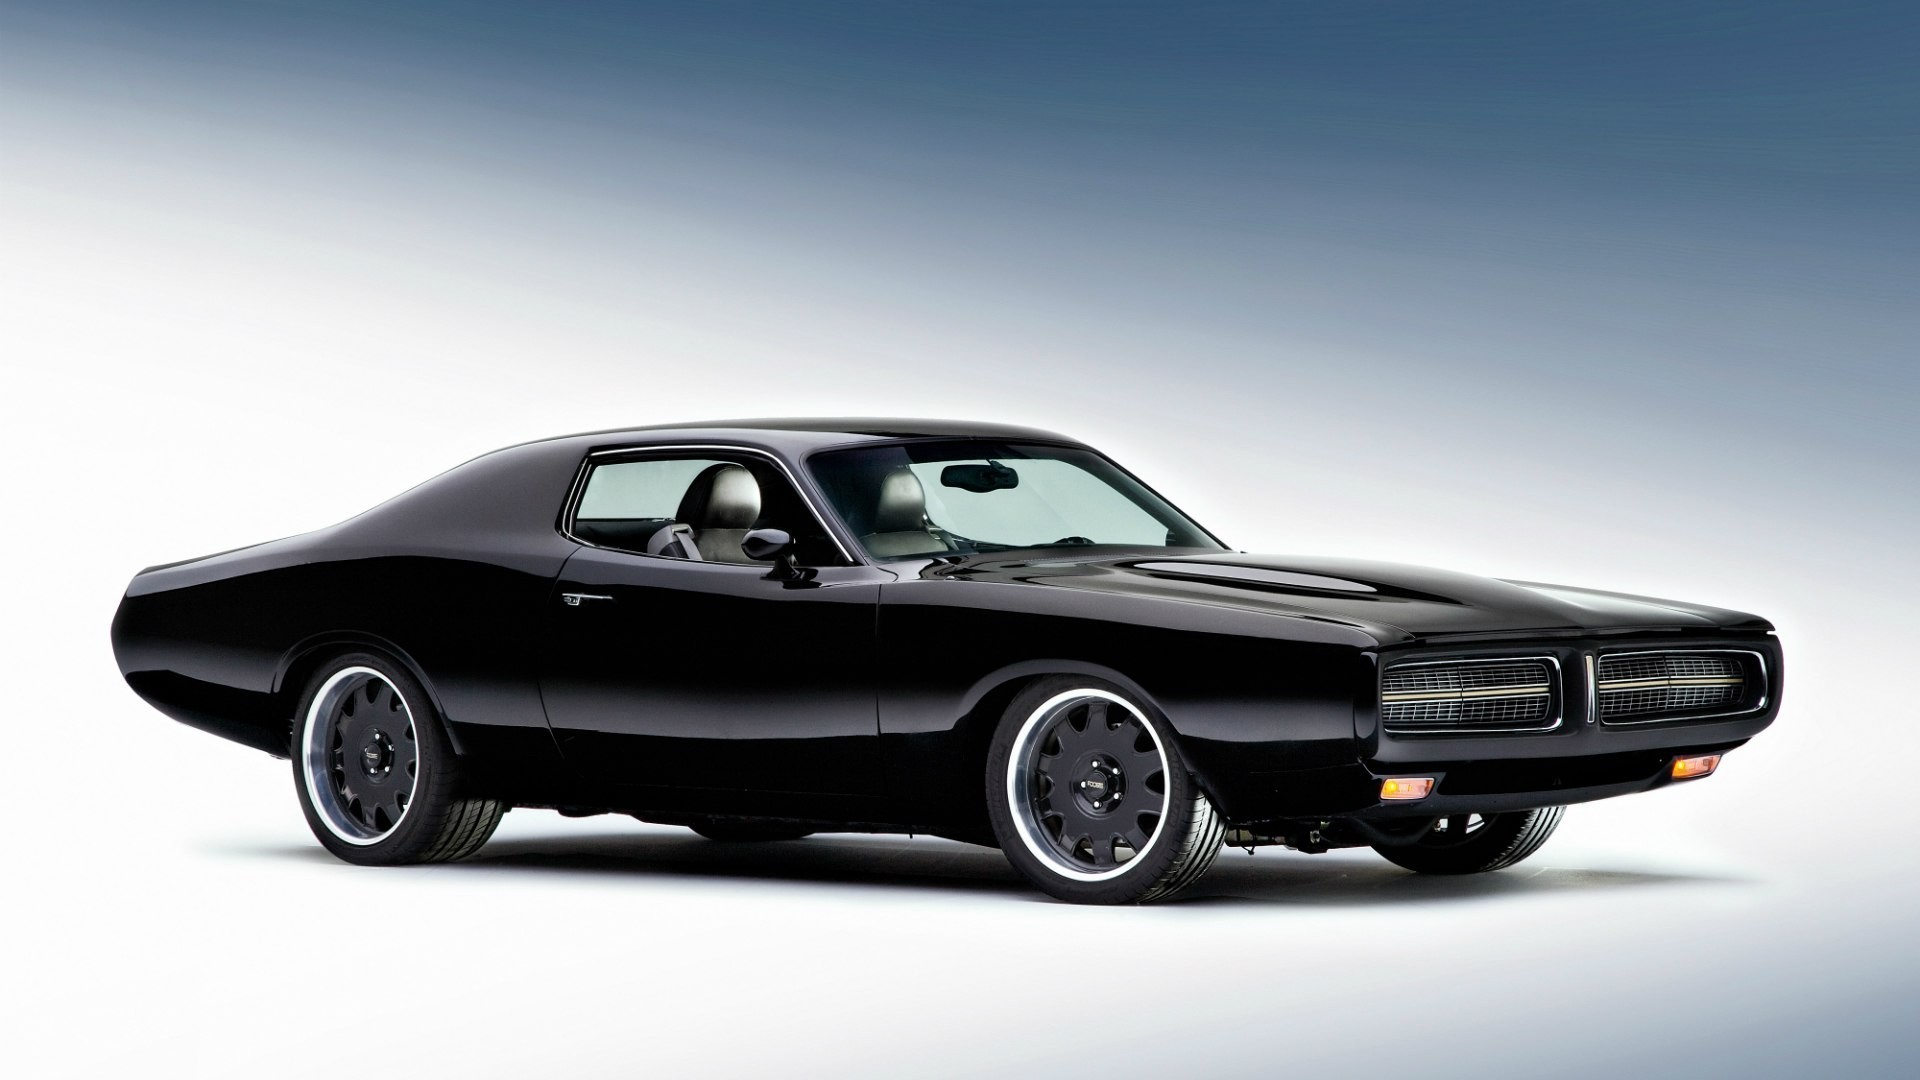 1970 Dodge Charger Cars, dodge charger phone wallpaper – JohnyWheels